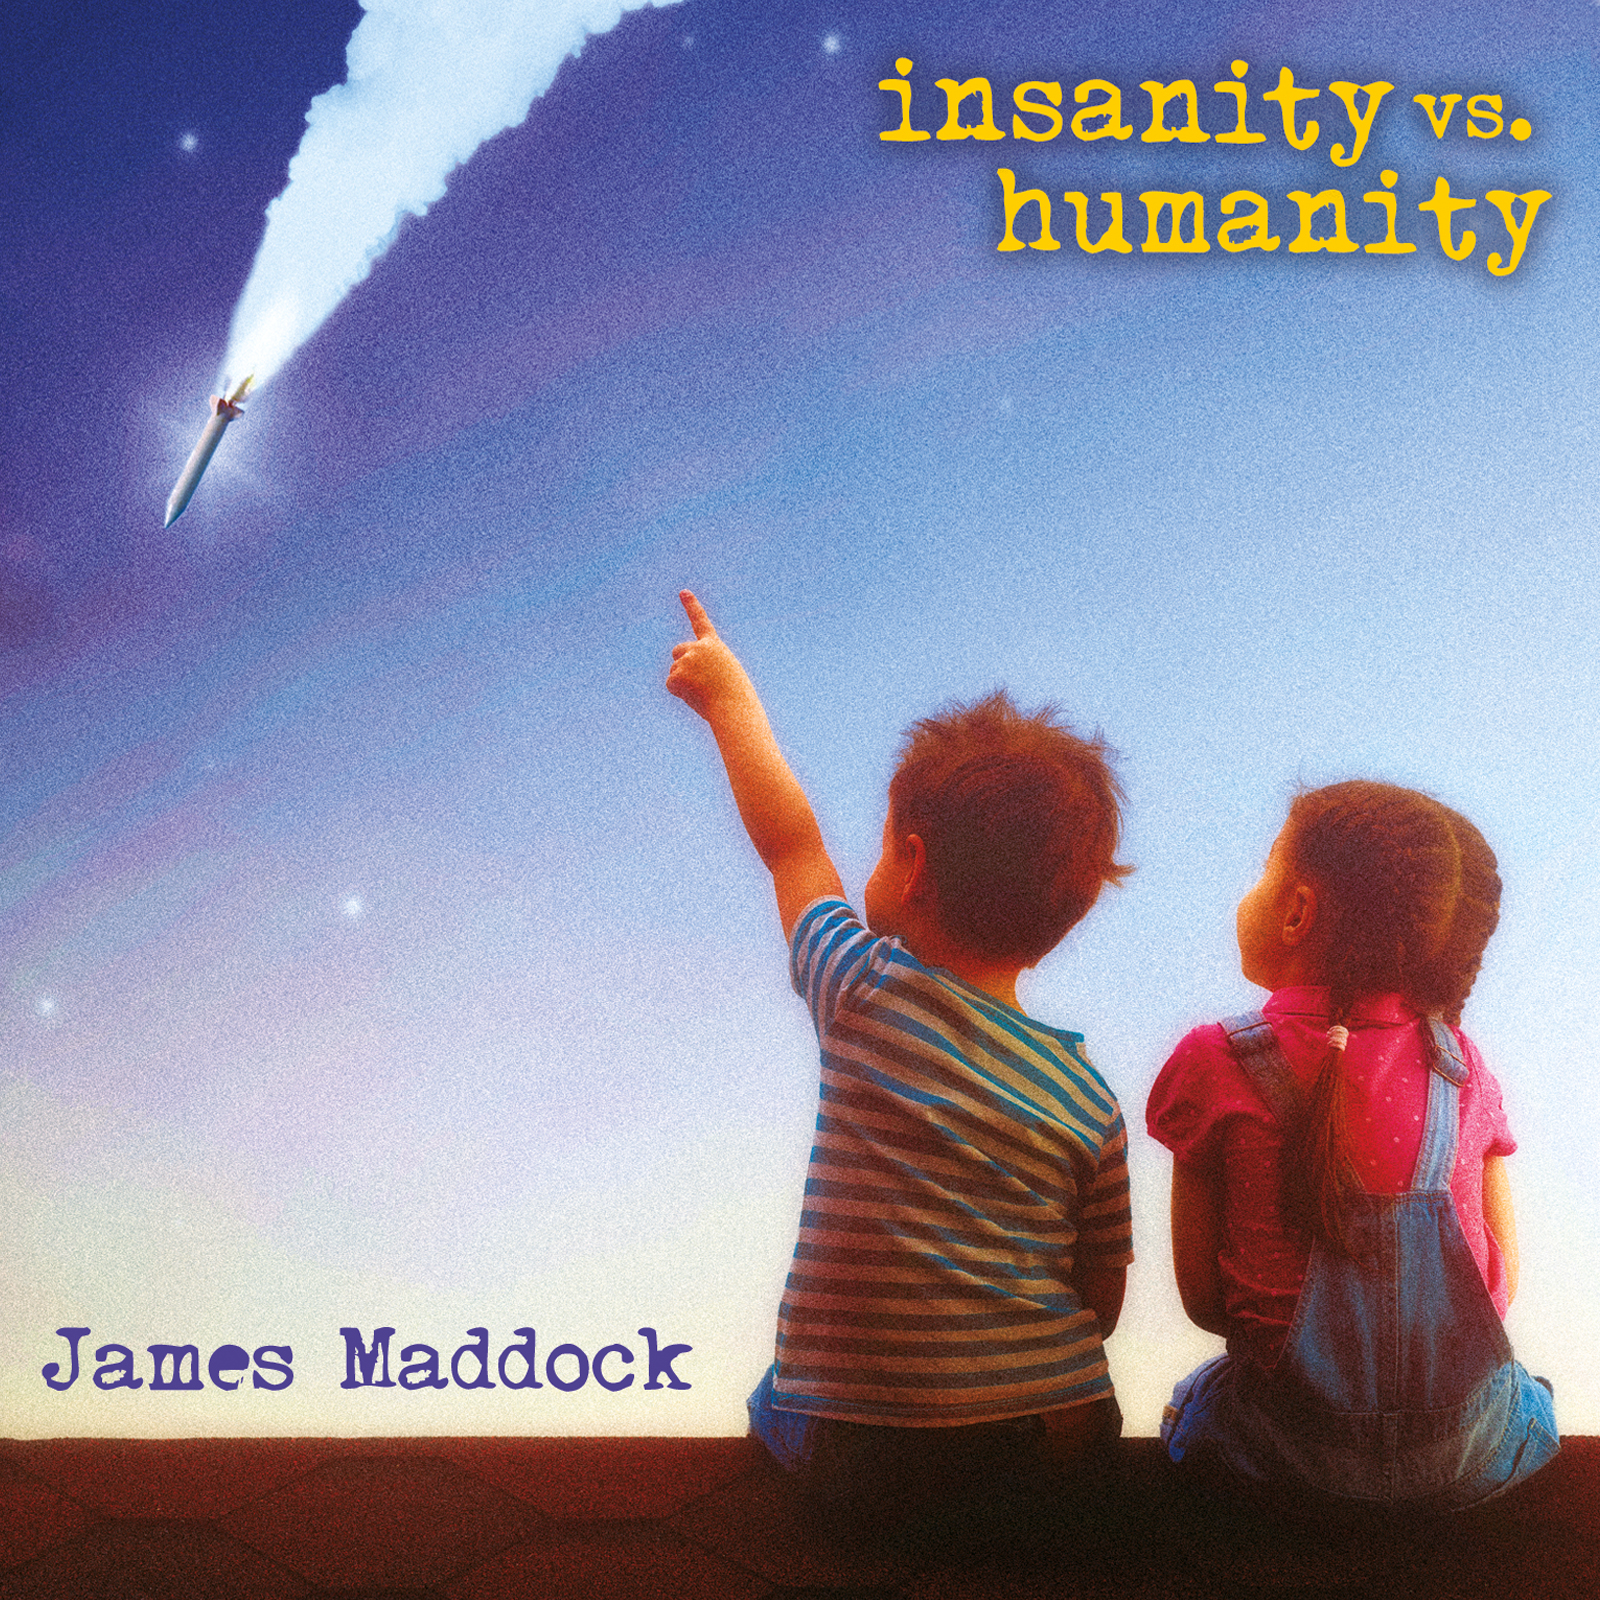 The Darker Voices Of Humanity >> James Maddock New Album Insanity Vs Humanity Out Now Songs Of